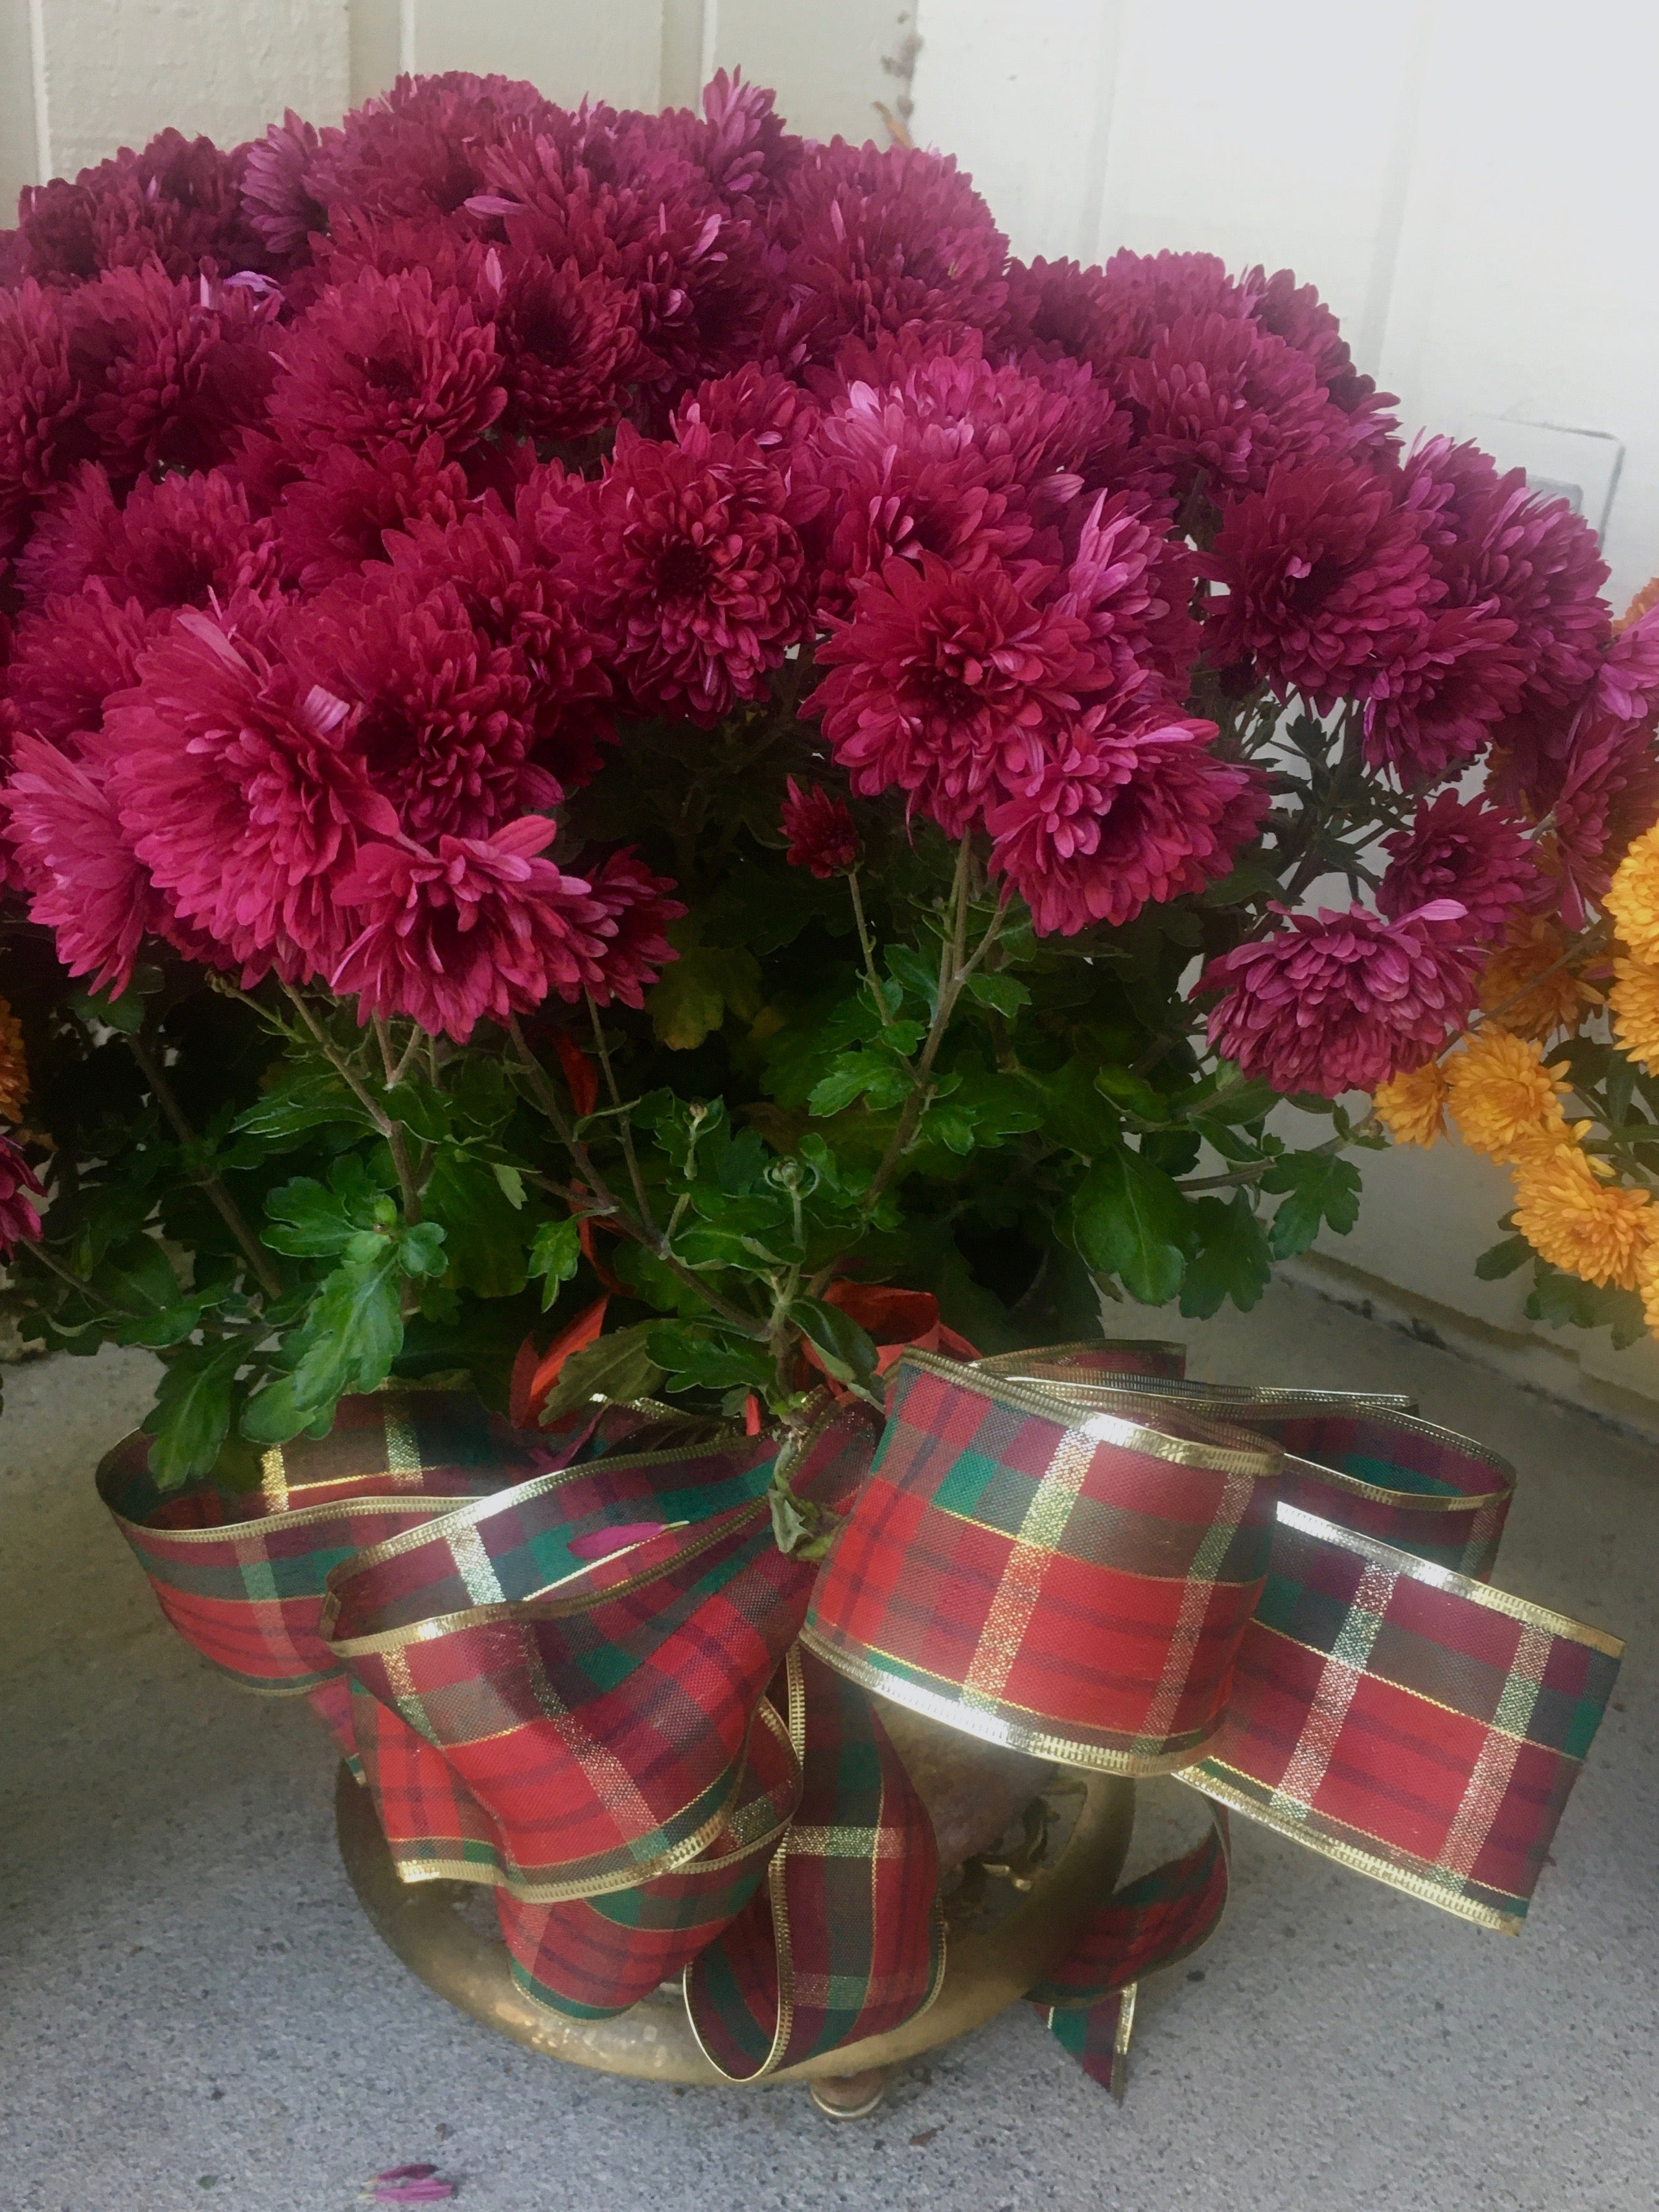 Chrysanthemums with Christmas ribbon at craft show